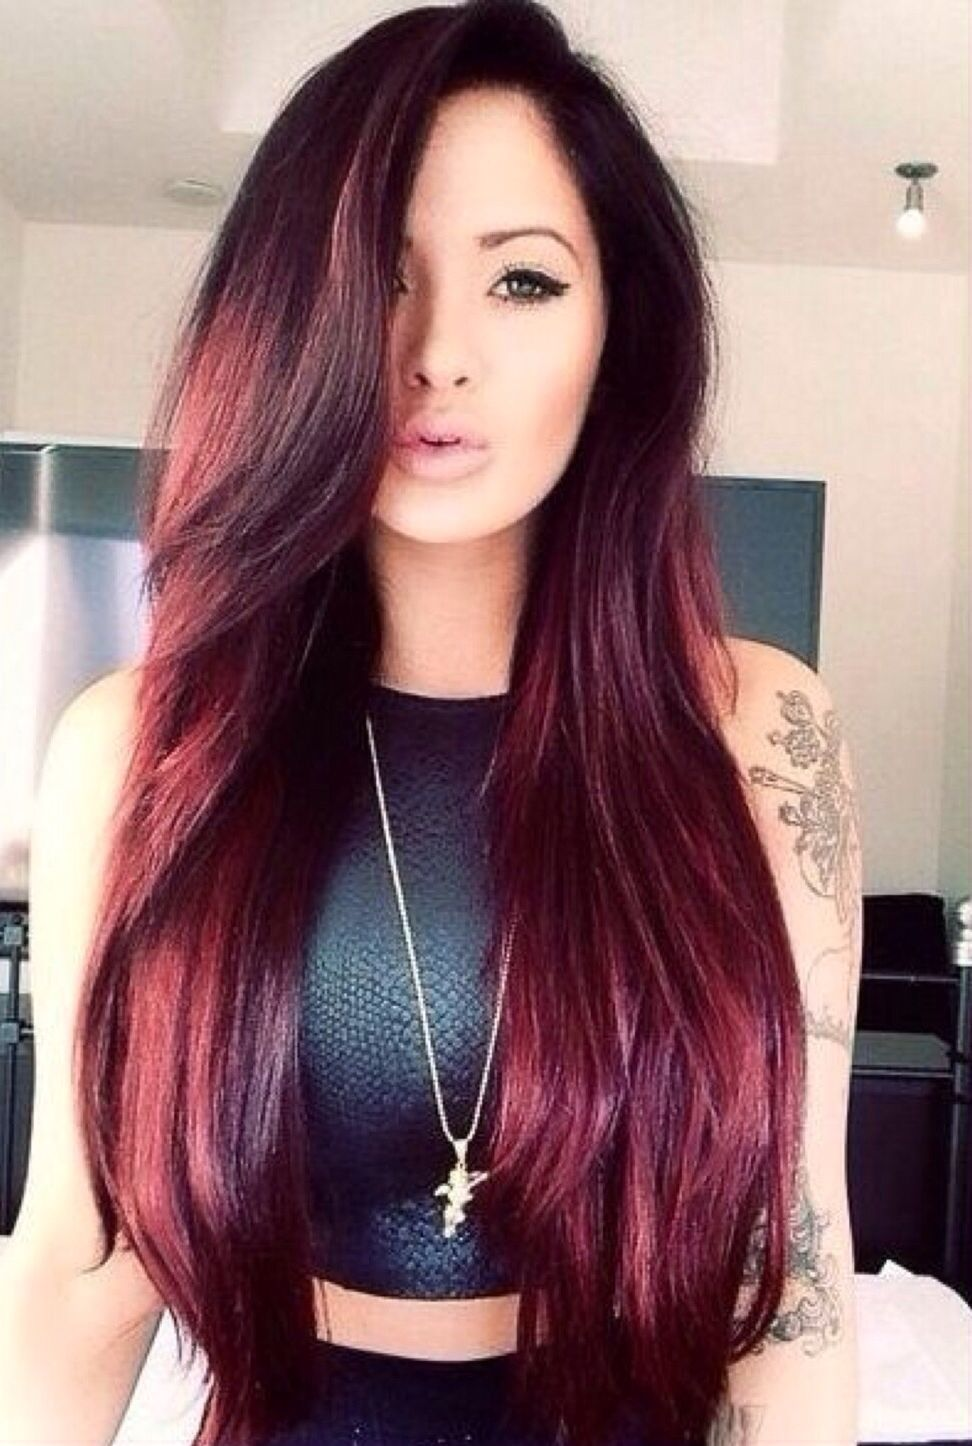 Images about hair colors and styles on pinterest - I Think It S A Nice Color This Hair Color Indicates More Prominent Eyes This Color Matched To Each Skin Color I Chose The Most Beautiful Hair Color